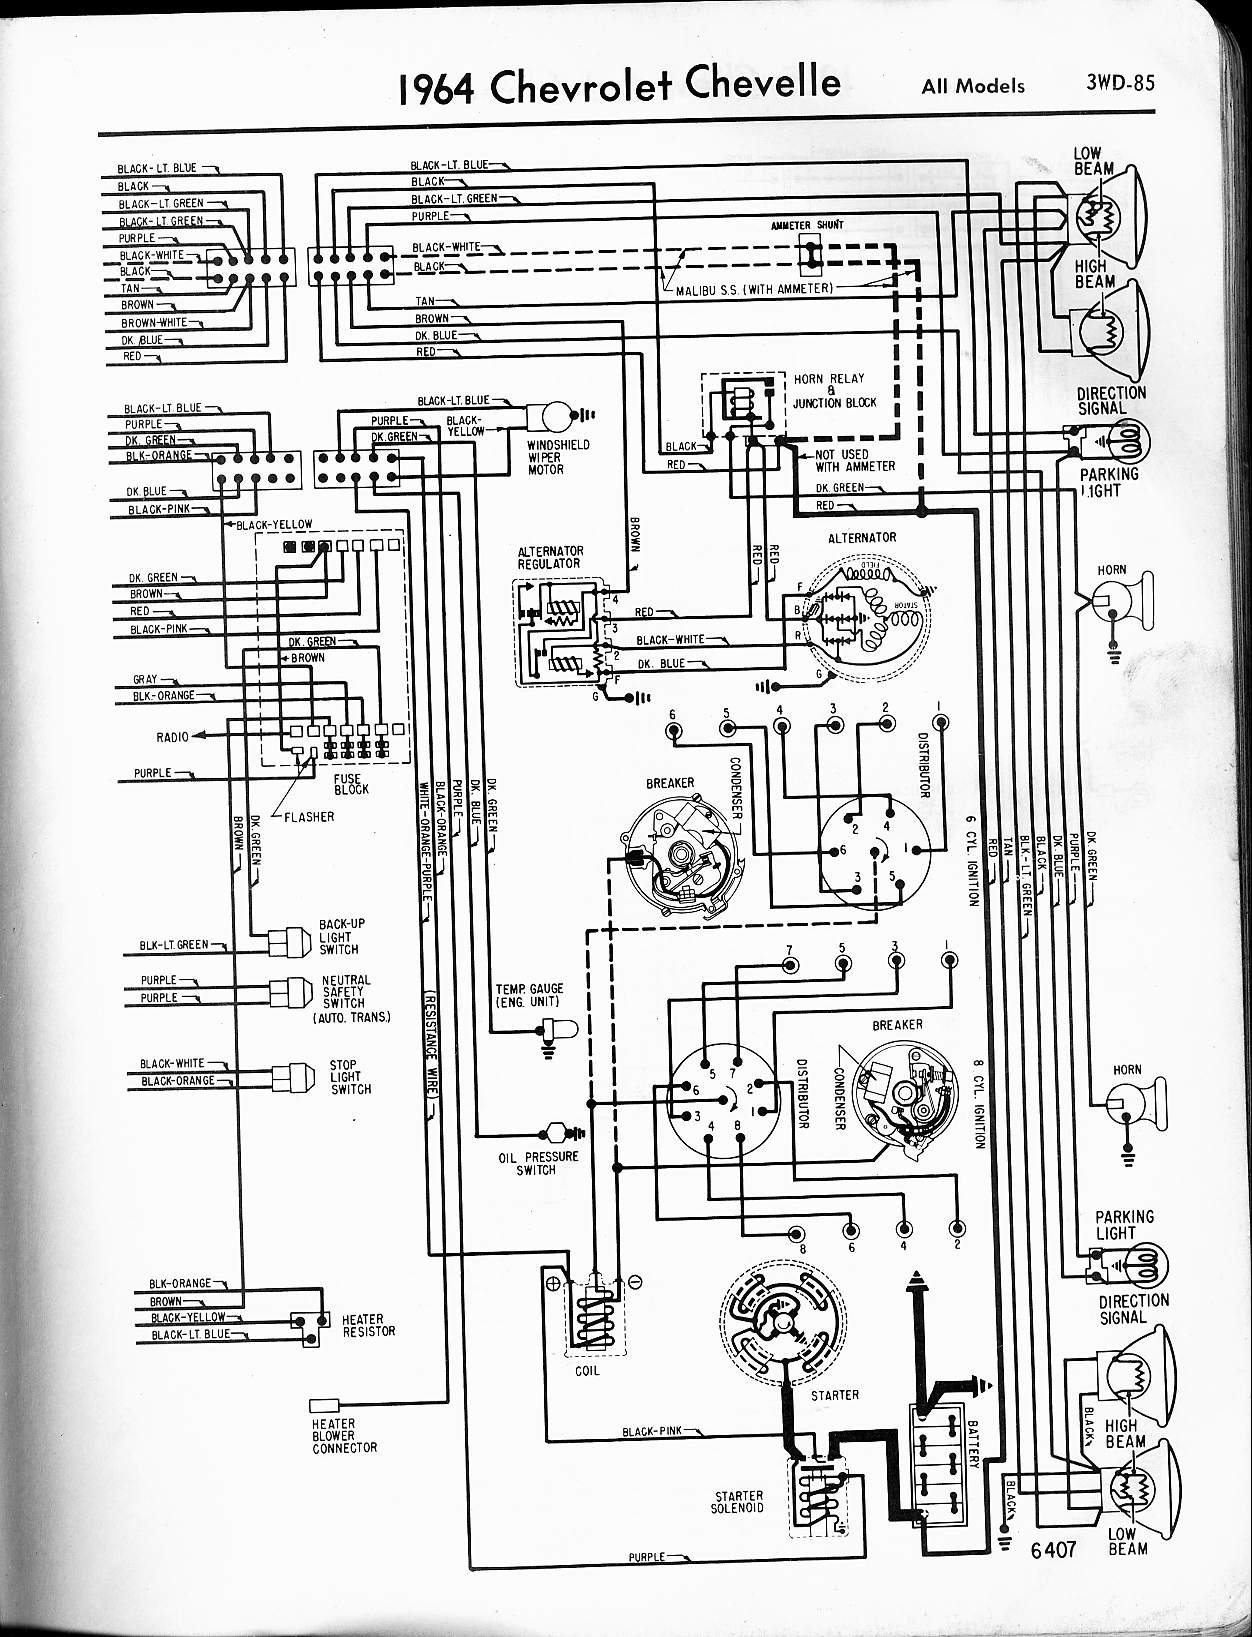 chevy diagrams on 1968 Camaro Wiring Diagram Chevy TBI Wiring Harness for 1964 chevelle wiring diagram figure a figure b